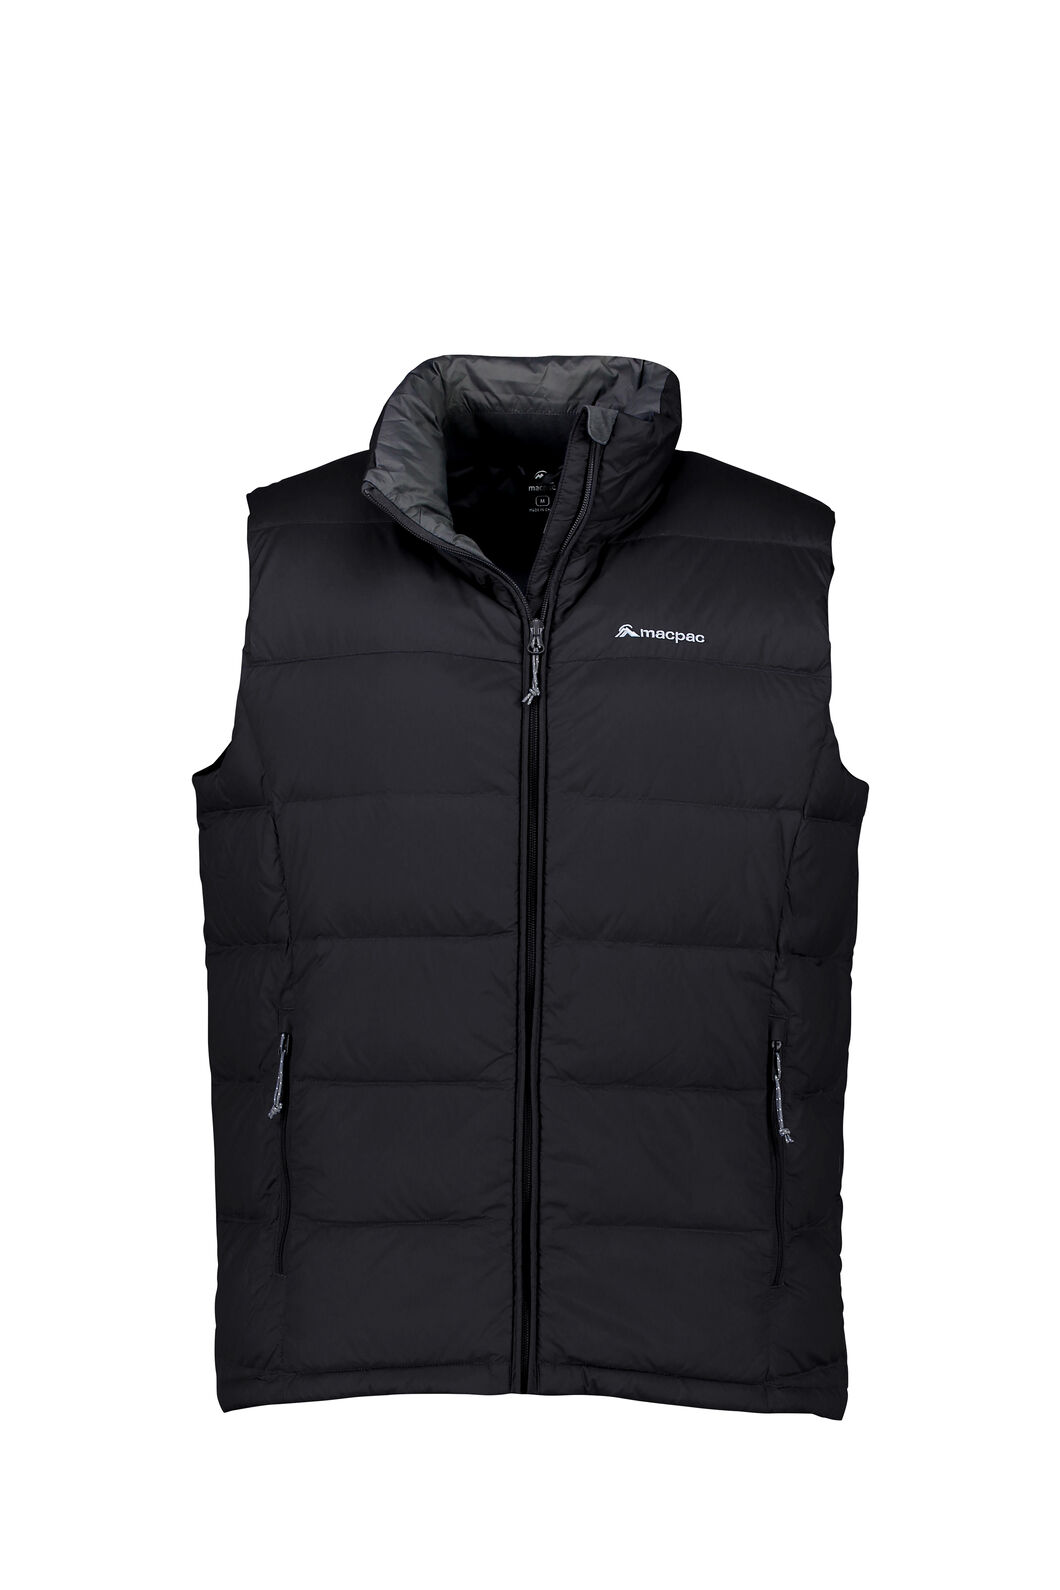 Halo Down Vest - Men's, Black, hi-res